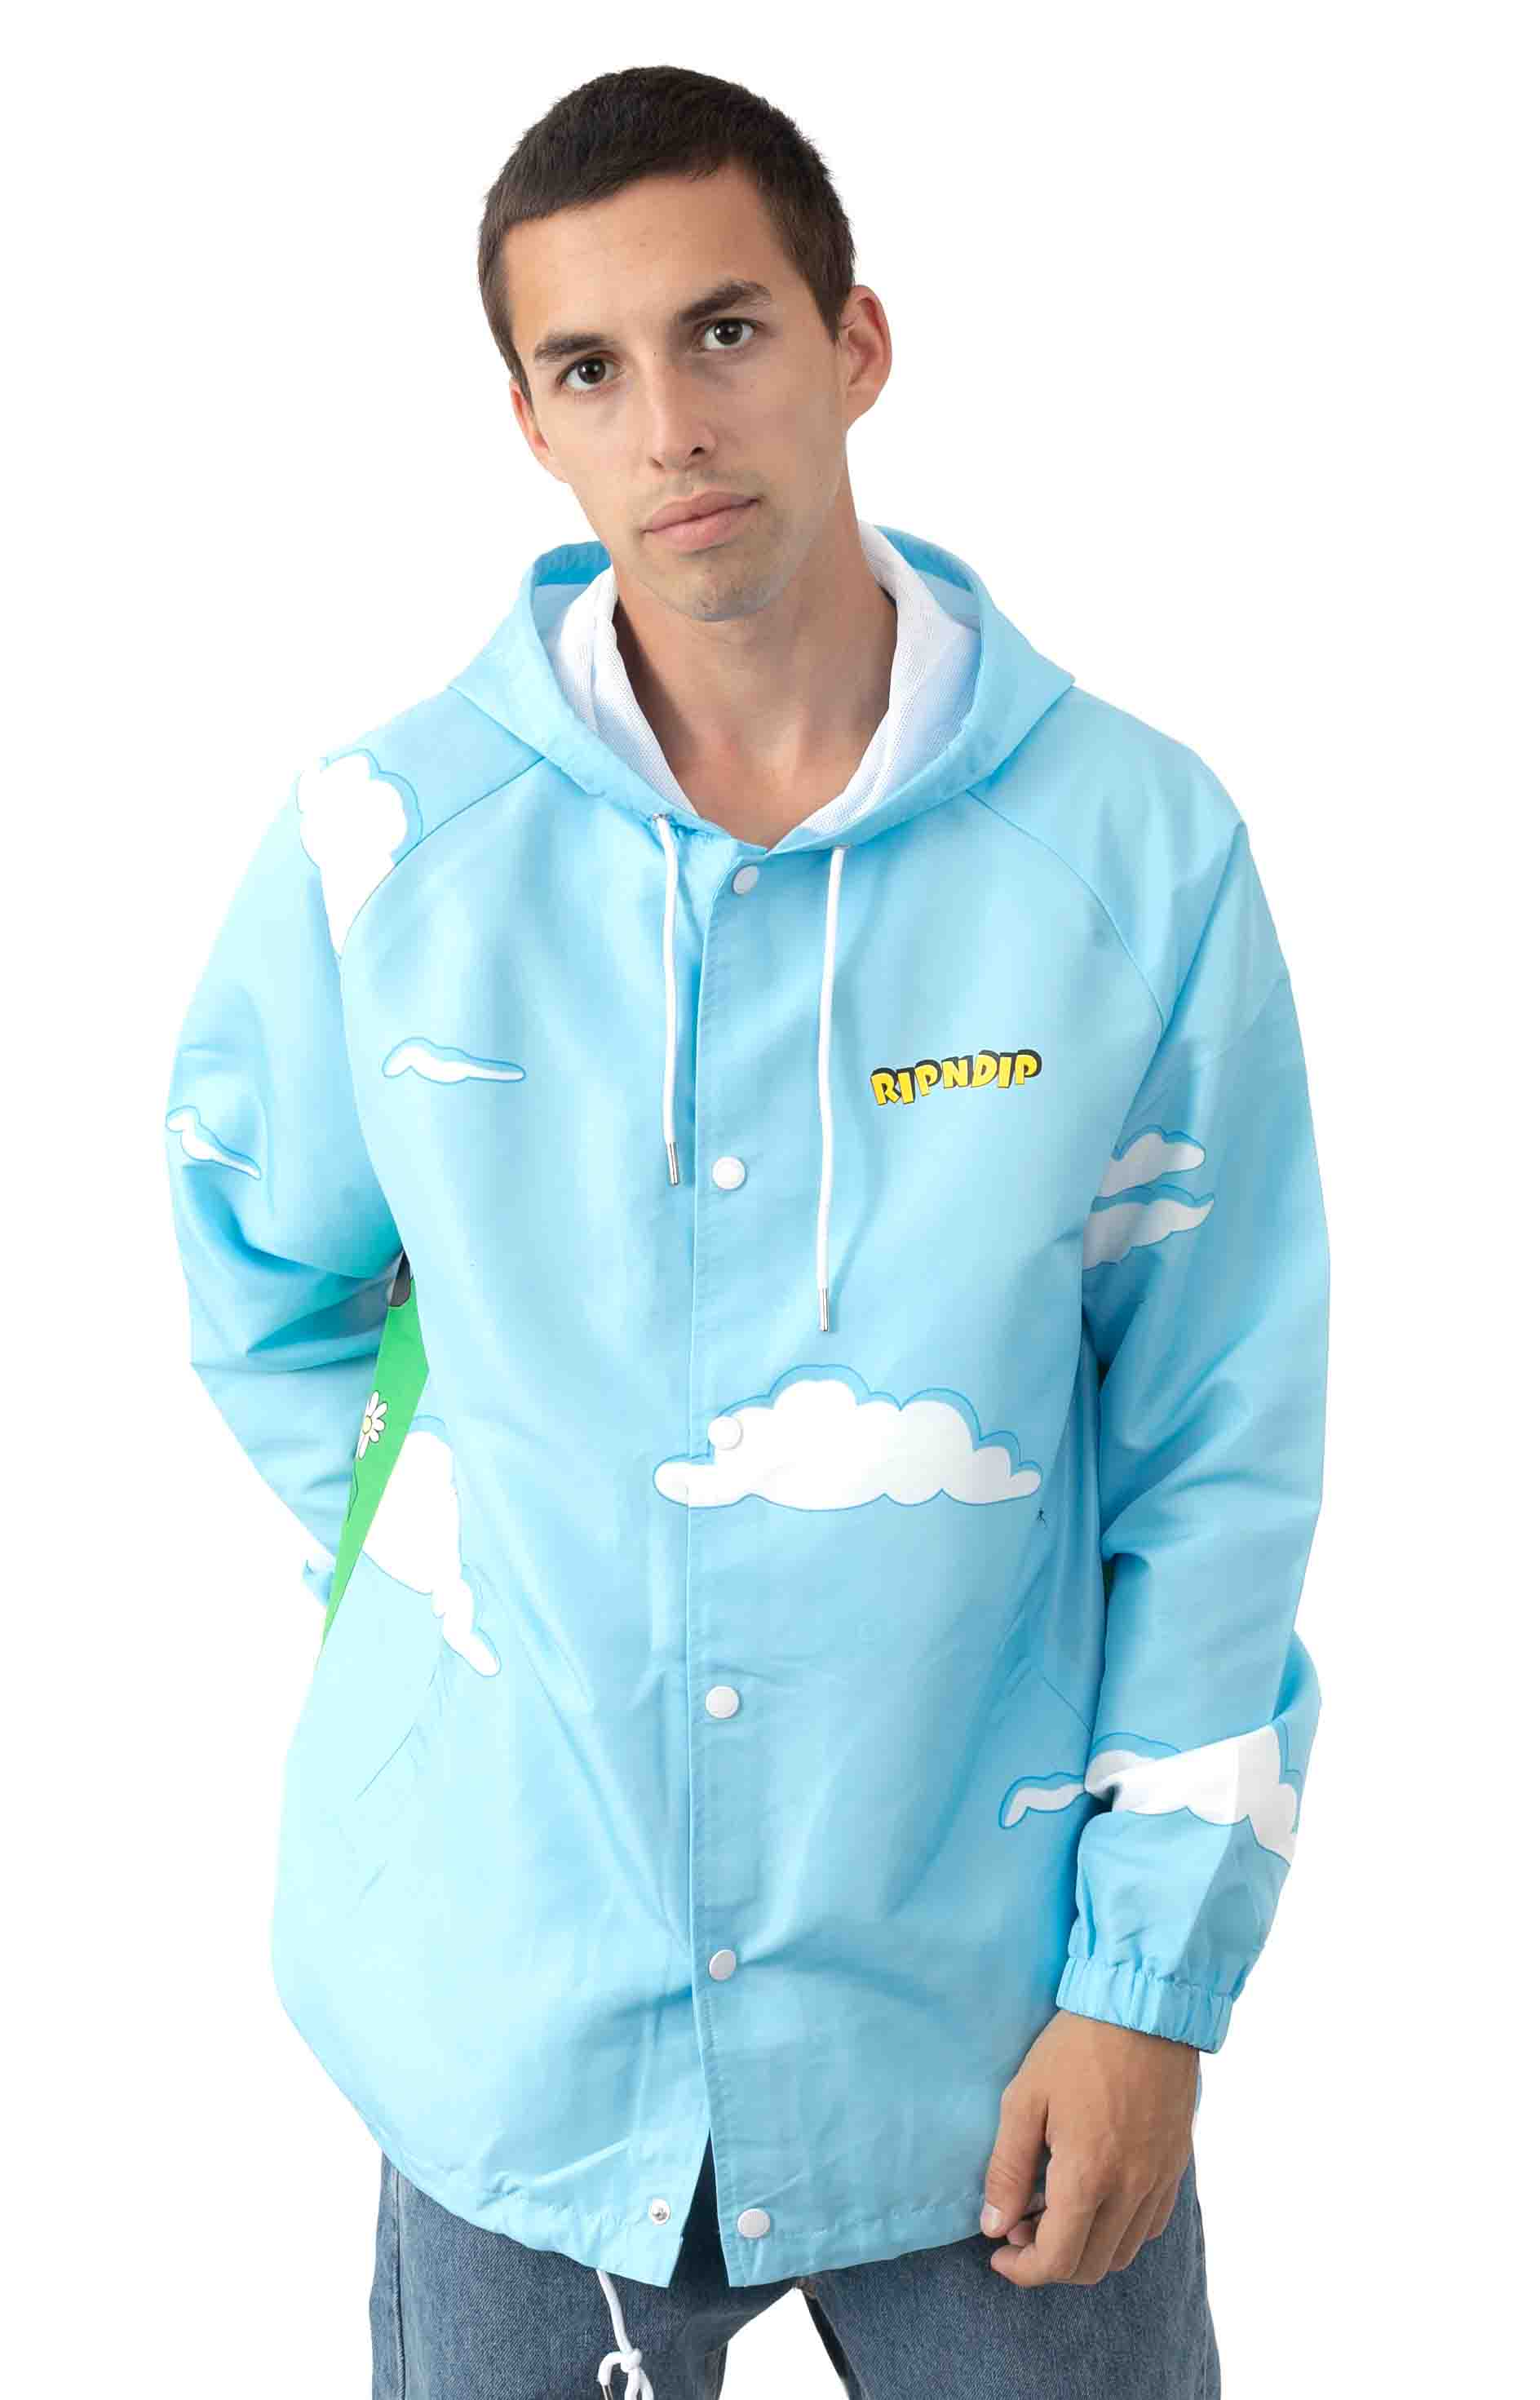 No Place Like Home Hooded Coaches Jacket - Baby Blue  2